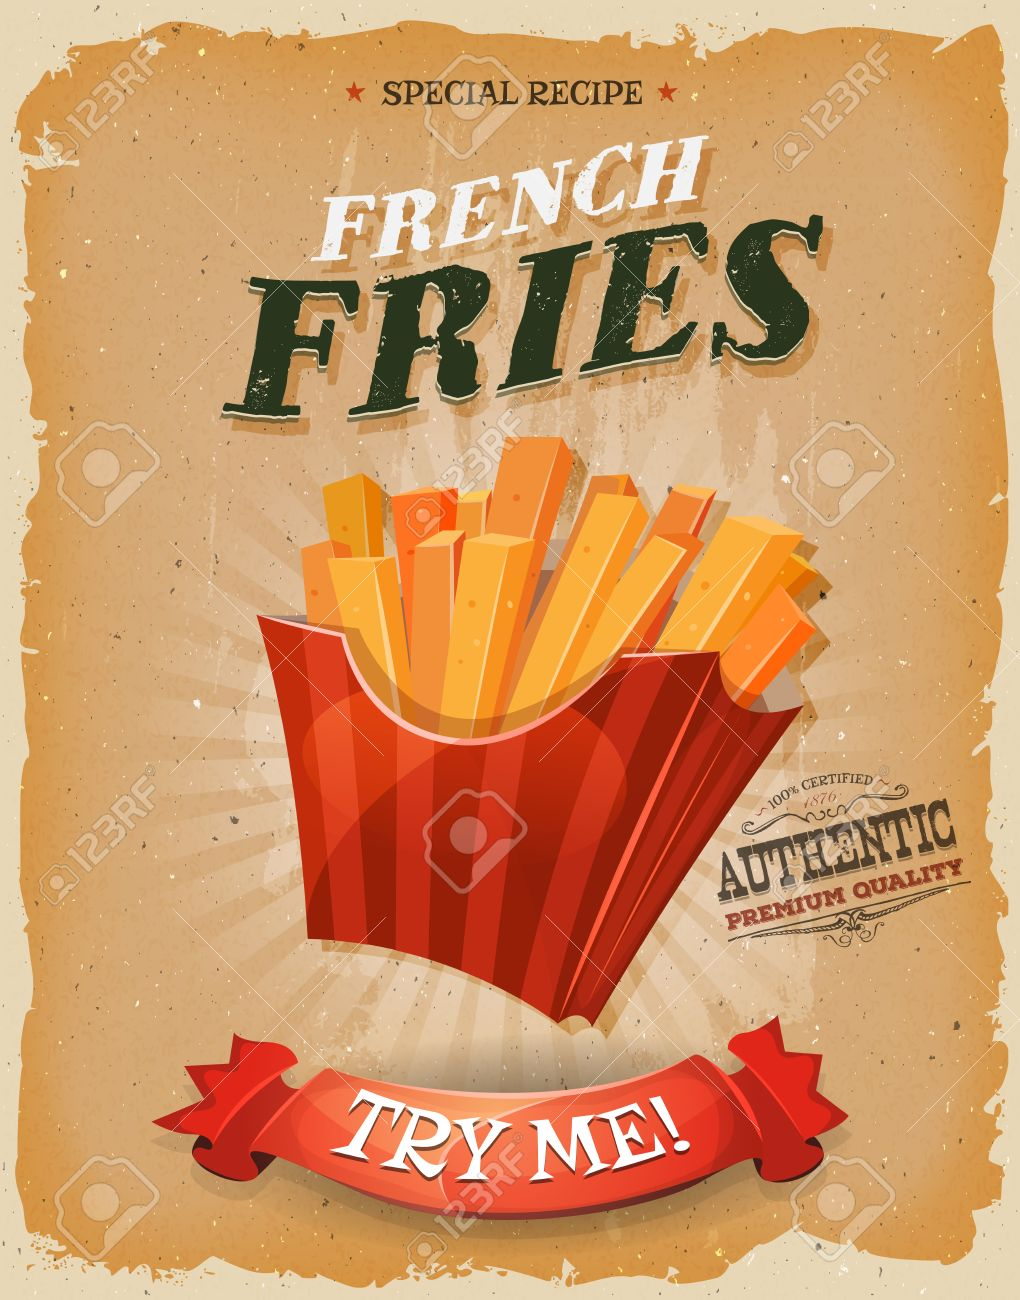 Illustration of a design vintage and grunge textured poster, with french fried potatoes icon, for fast food snack and takeaway menu - 45644236